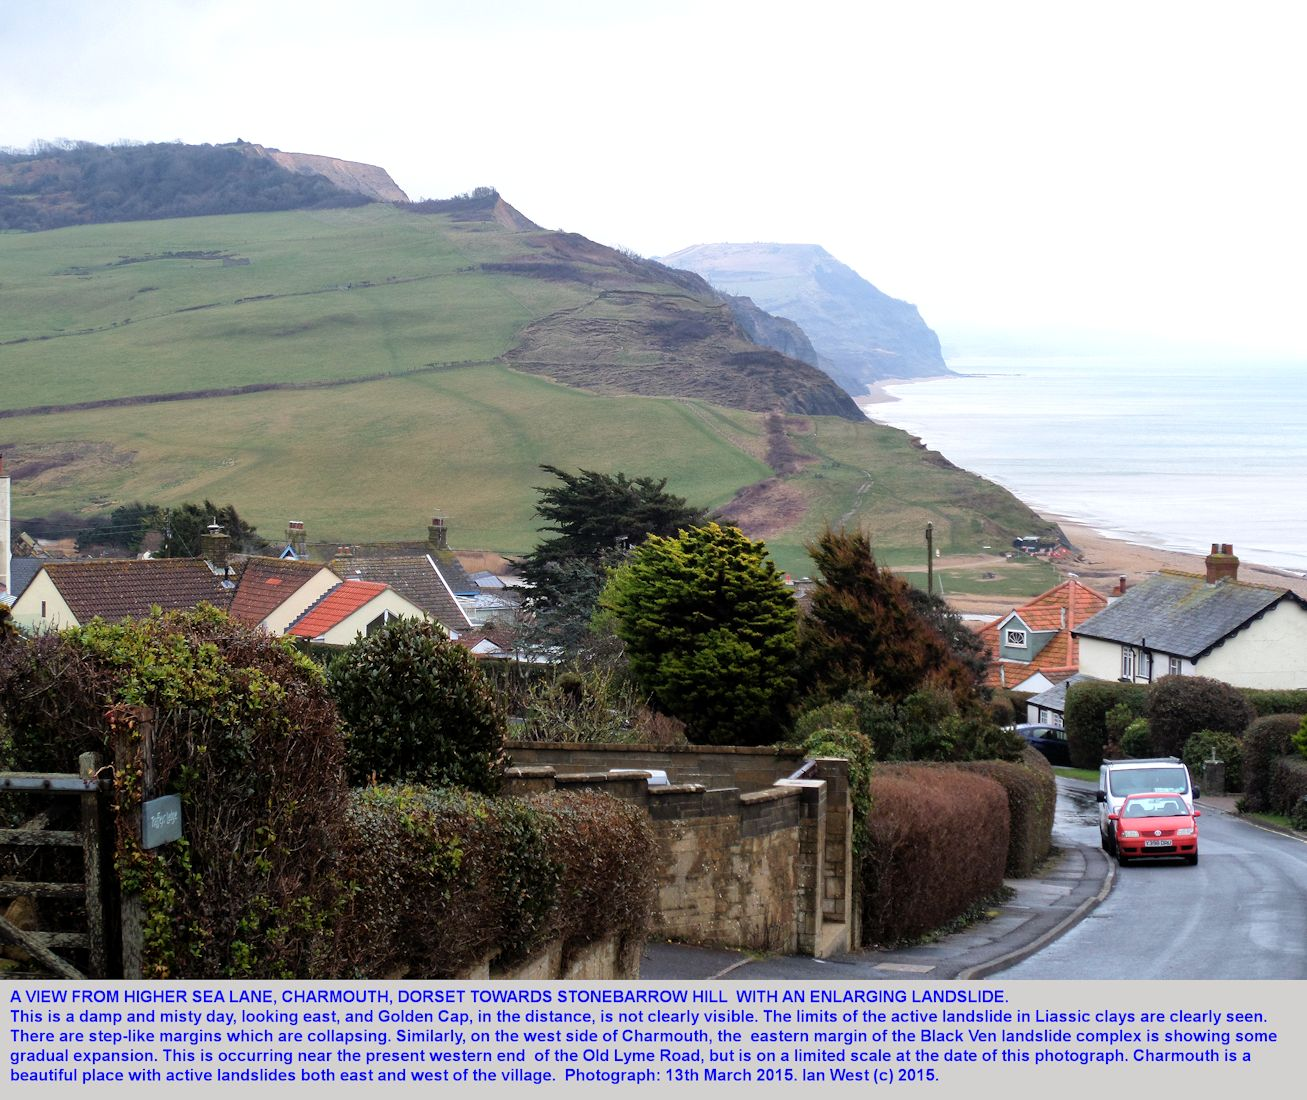 The landslide on the slopes up to Stonebarrow Hill, and just east of Charmouth sea front, Dorset, 13th March 2015